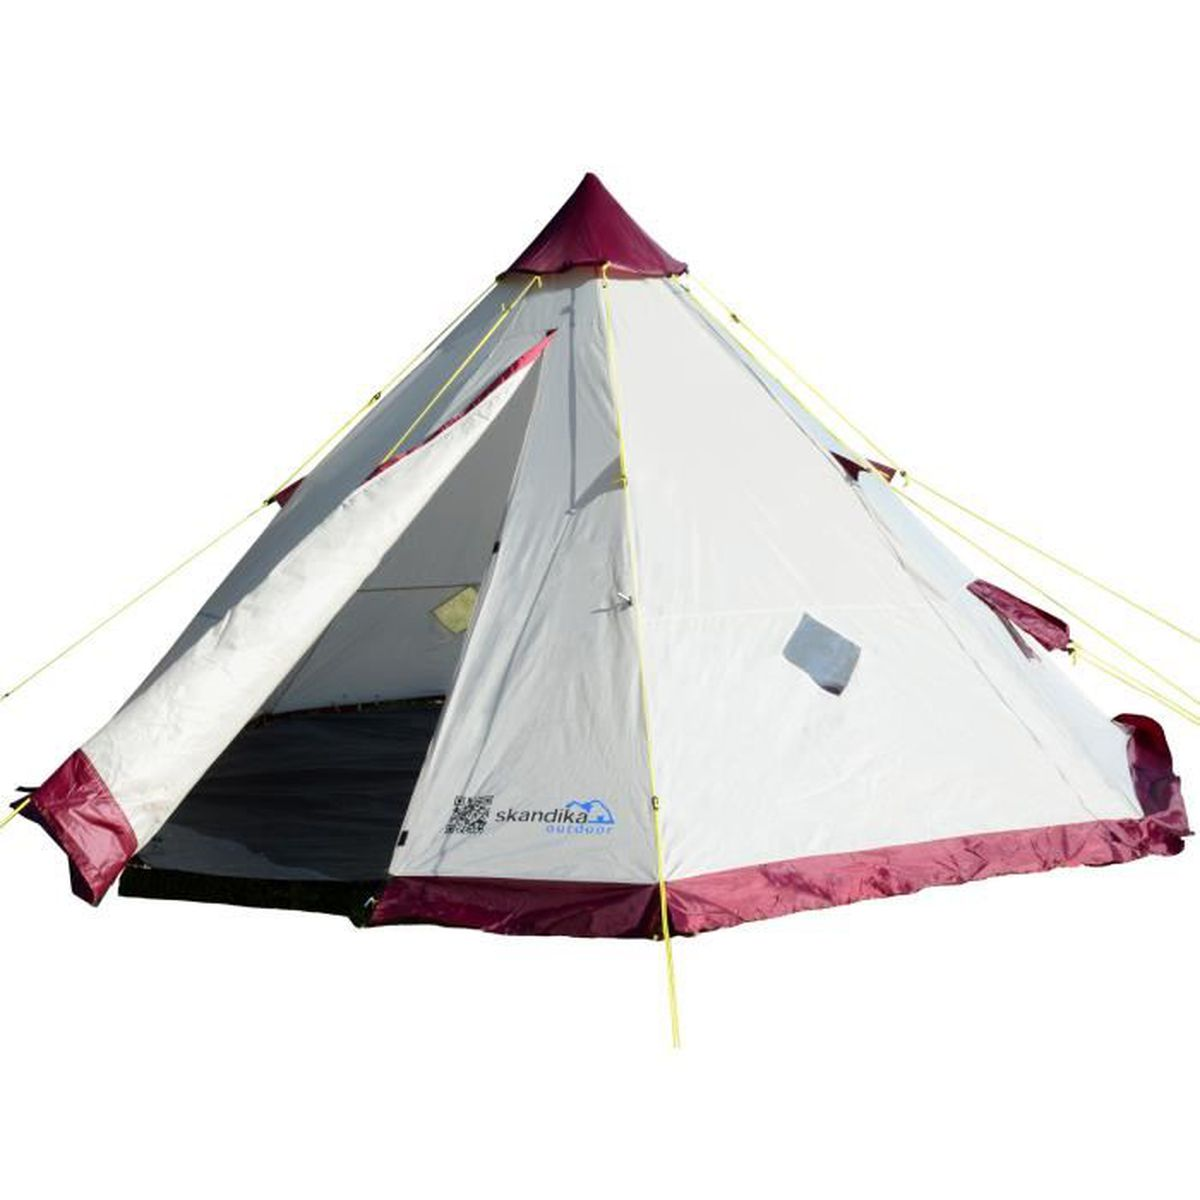 tente de camping tipi achat vente pas cher soldes. Black Bedroom Furniture Sets. Home Design Ideas